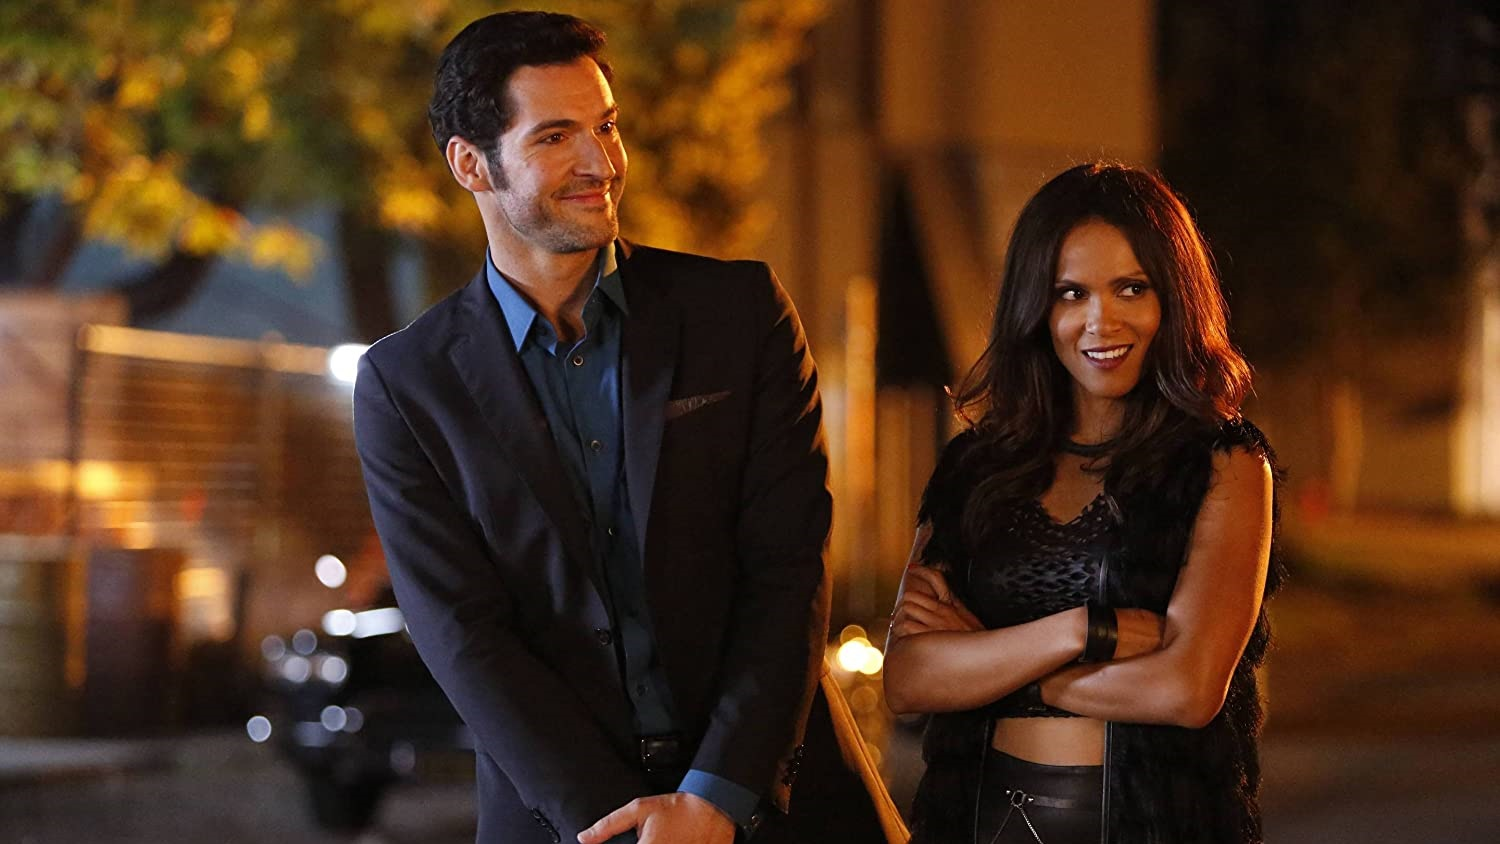 Lucifer Season 5 Plot Spoilers, Updates Episode 4 will Feature the Backstory of Maze and the Devil